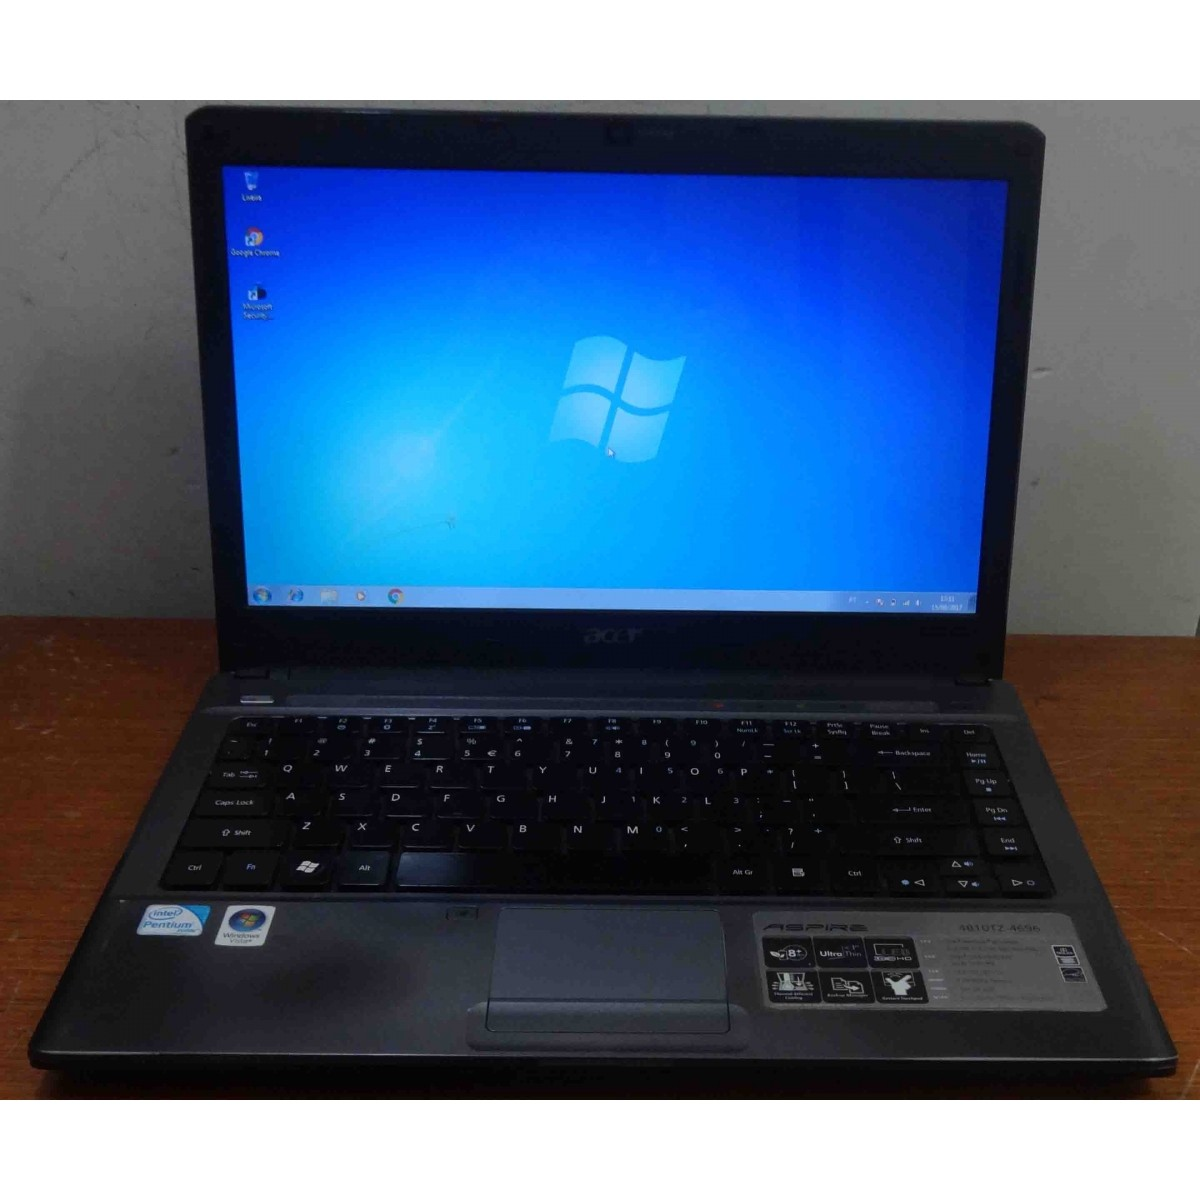 Notebook Acer Aspire 4810TZ 14'' Intel Pentium 1.3GHz 3GB HD-320GB